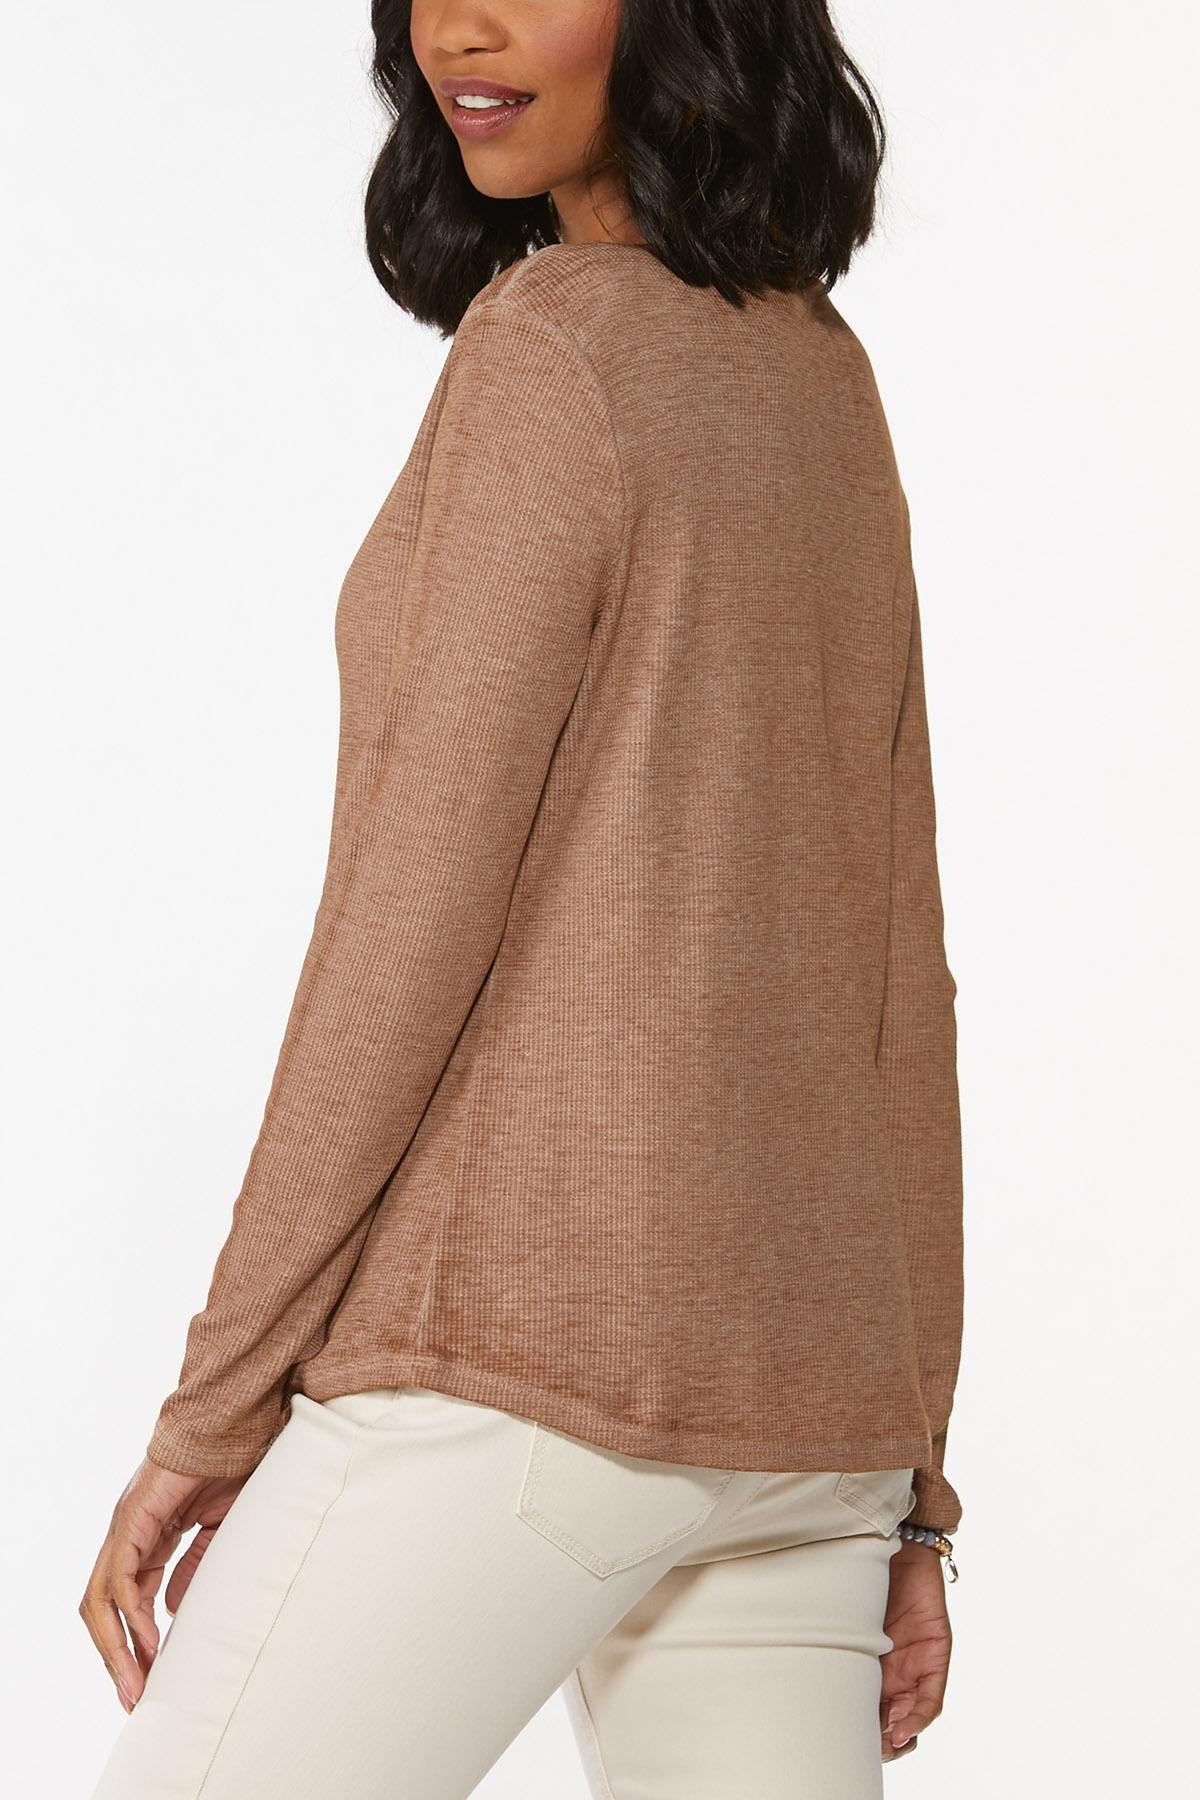 Plus Size Pumpkin Spice Everything Top (Item #44781790)